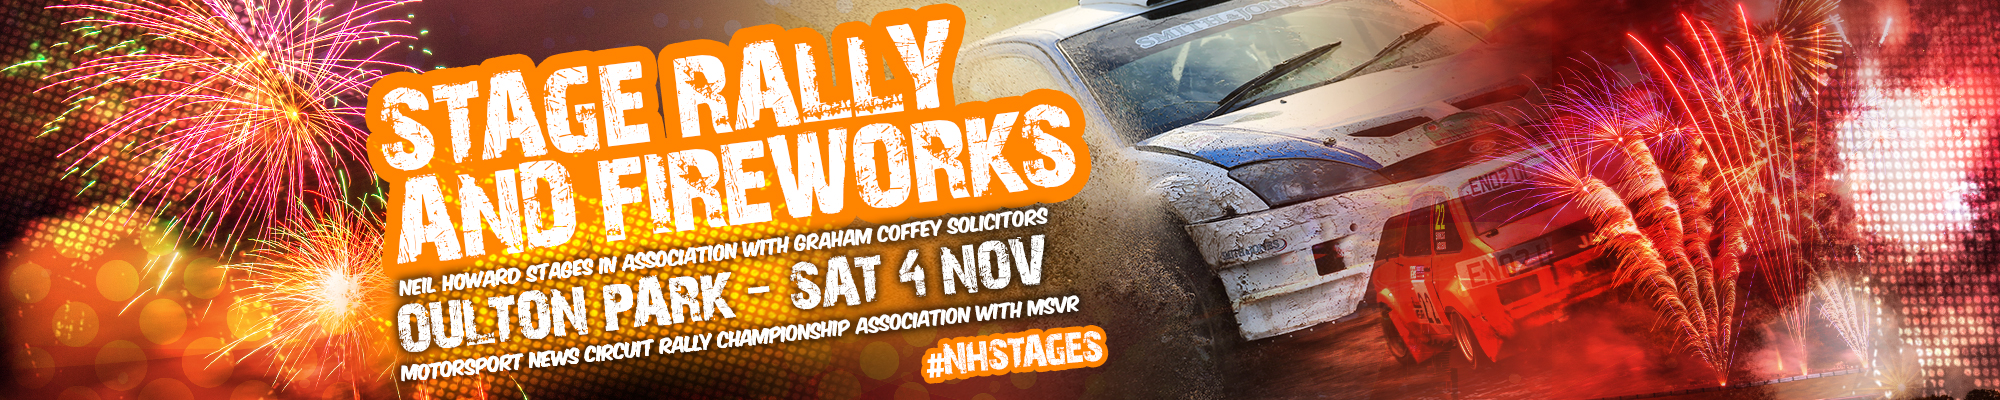 Neil Howard Stage Rally & Fireworks Display